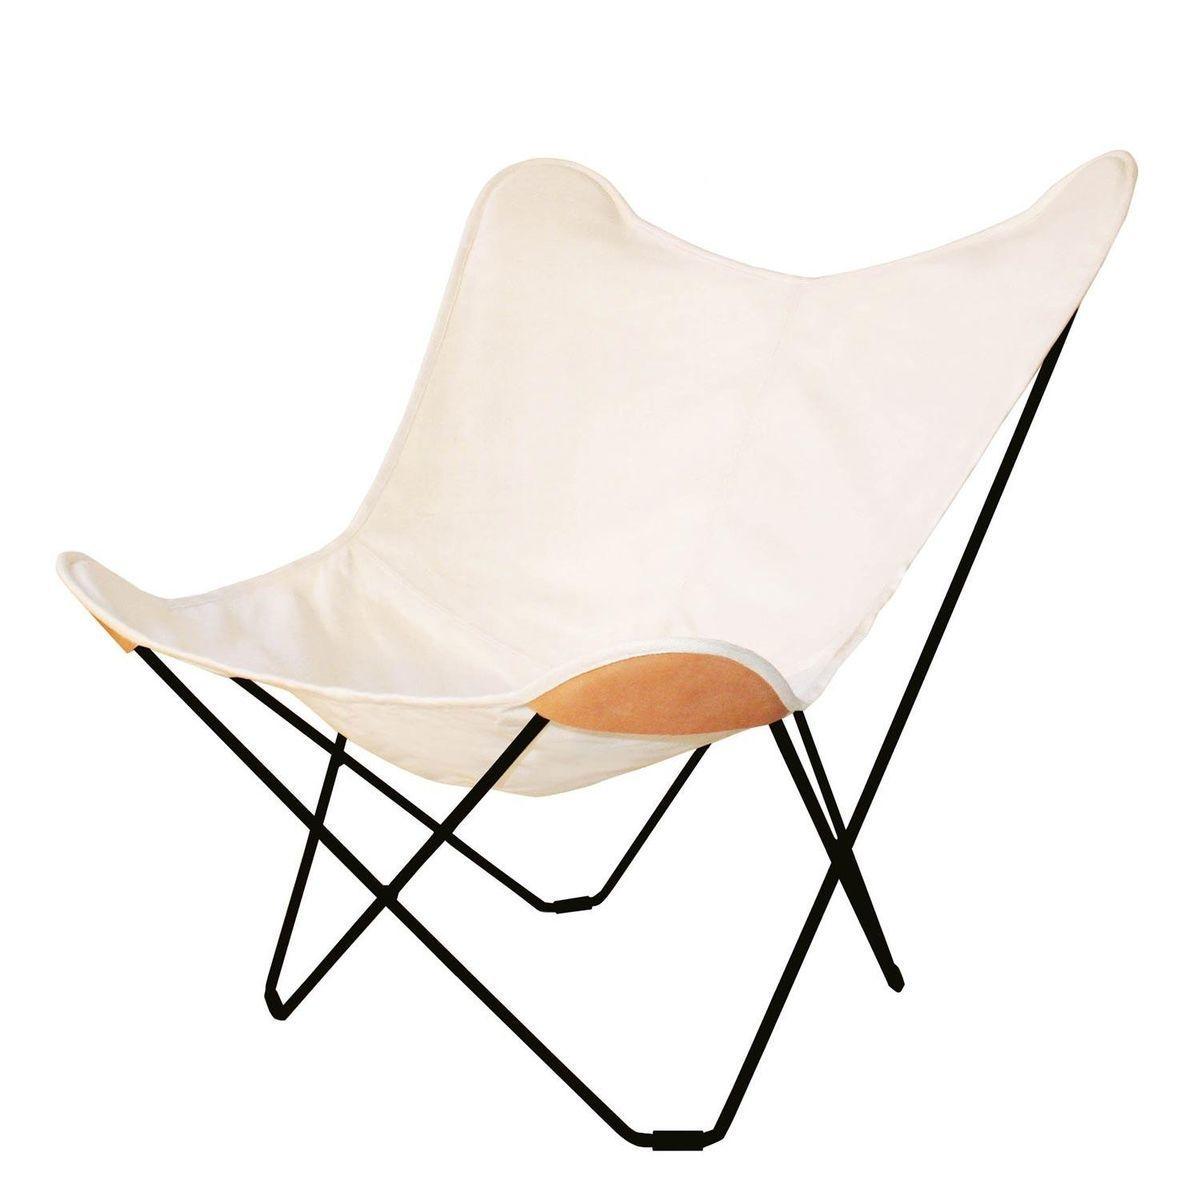 White Butterfly Chair Canvas Mariposa Butterfly Chair Outdoor Cuero